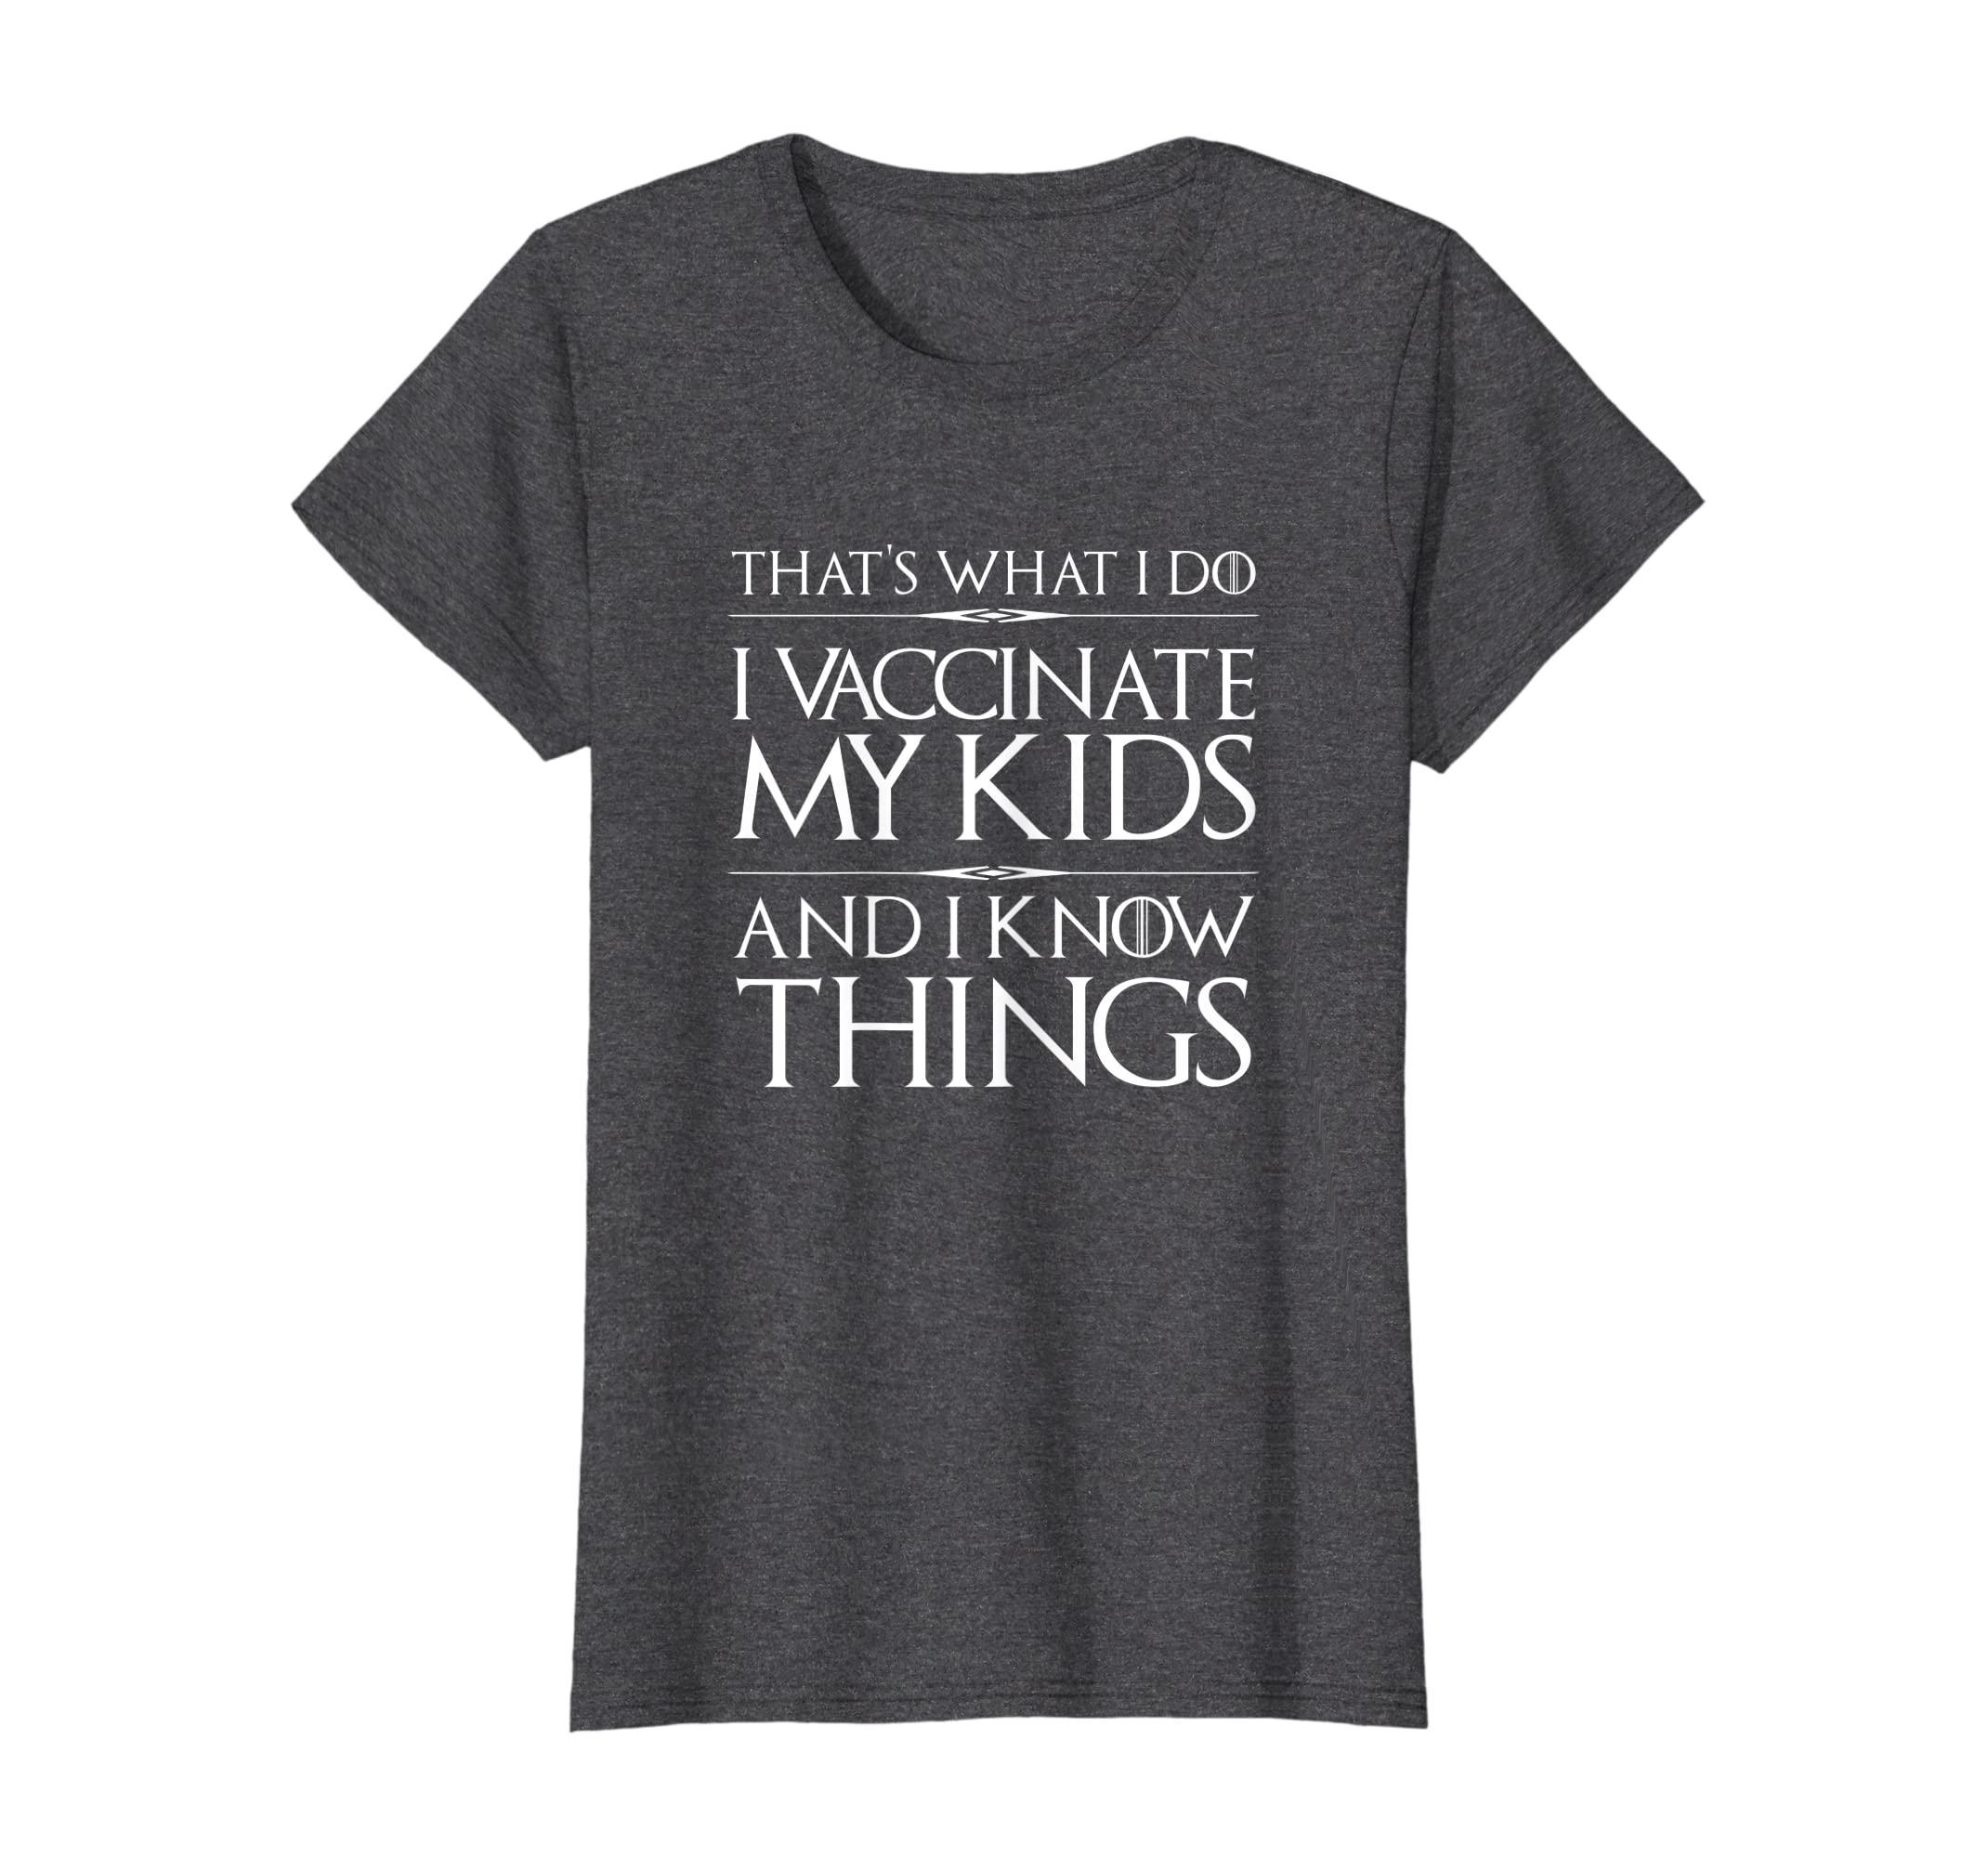 I Vaccinate My Kids And I Know Things  Funny Vaccine Shirt-Teehay